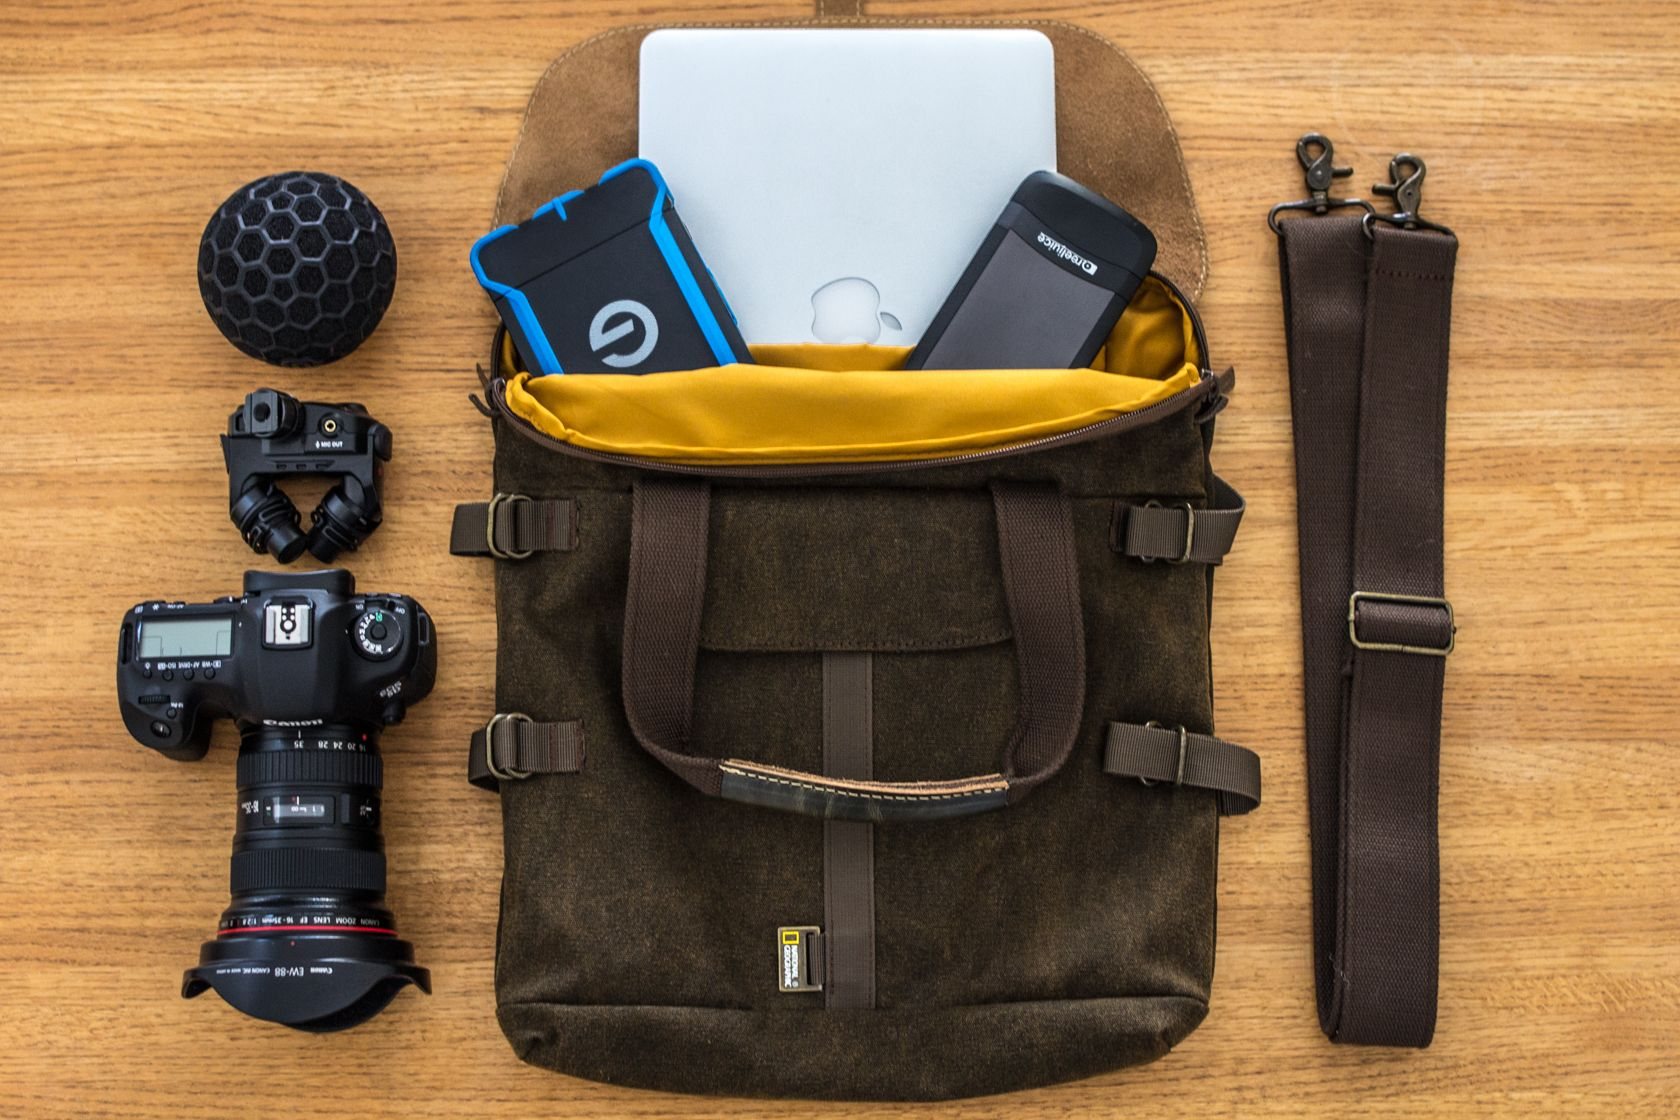 {Pictured: Apple Macbook Pro, G-technology Rugged 1tb drive, Lynktec Reel Juice portable charger, Canon 5dmiii, Rode Stereo Mic X, Nat Geo/ Manfrotto tote bag}